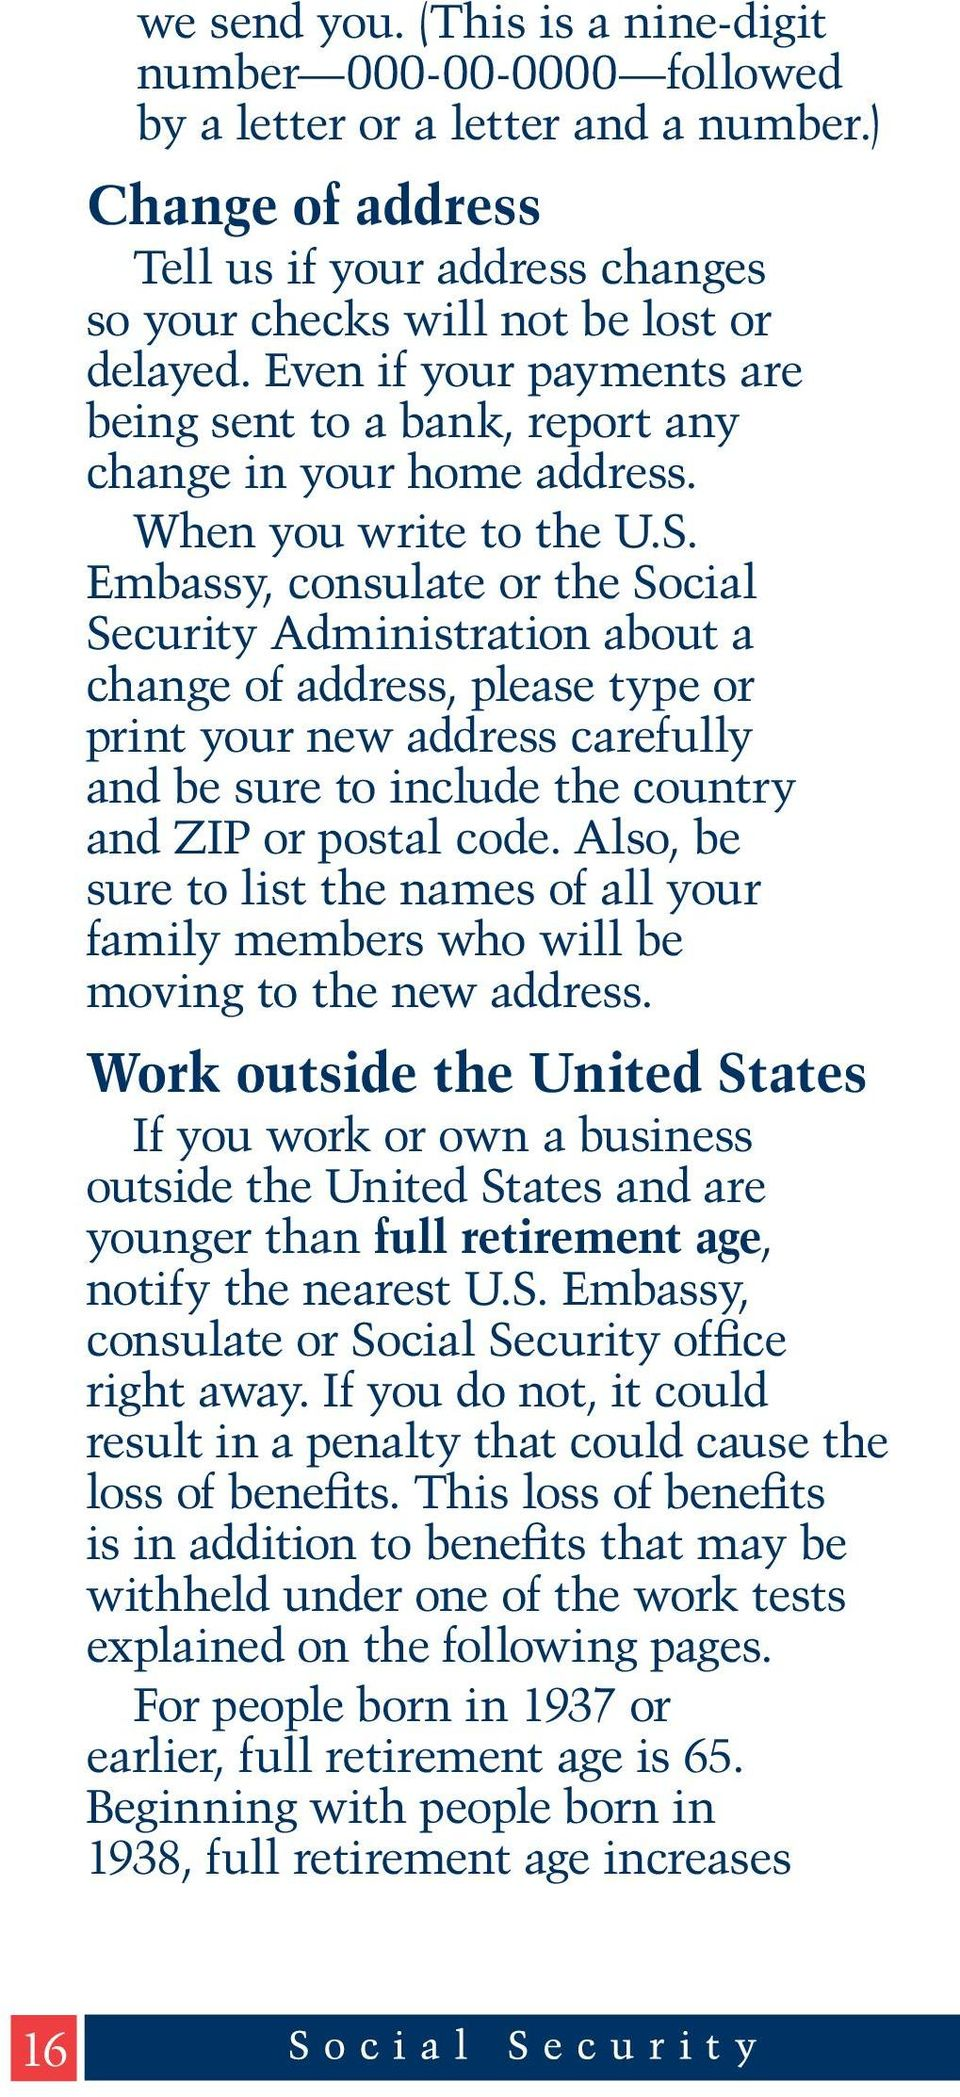 Embassy, consulate or the Social Security Administration about a change of address, please type or print your new address carefully and be sure to include the country and ZIP or postal code.